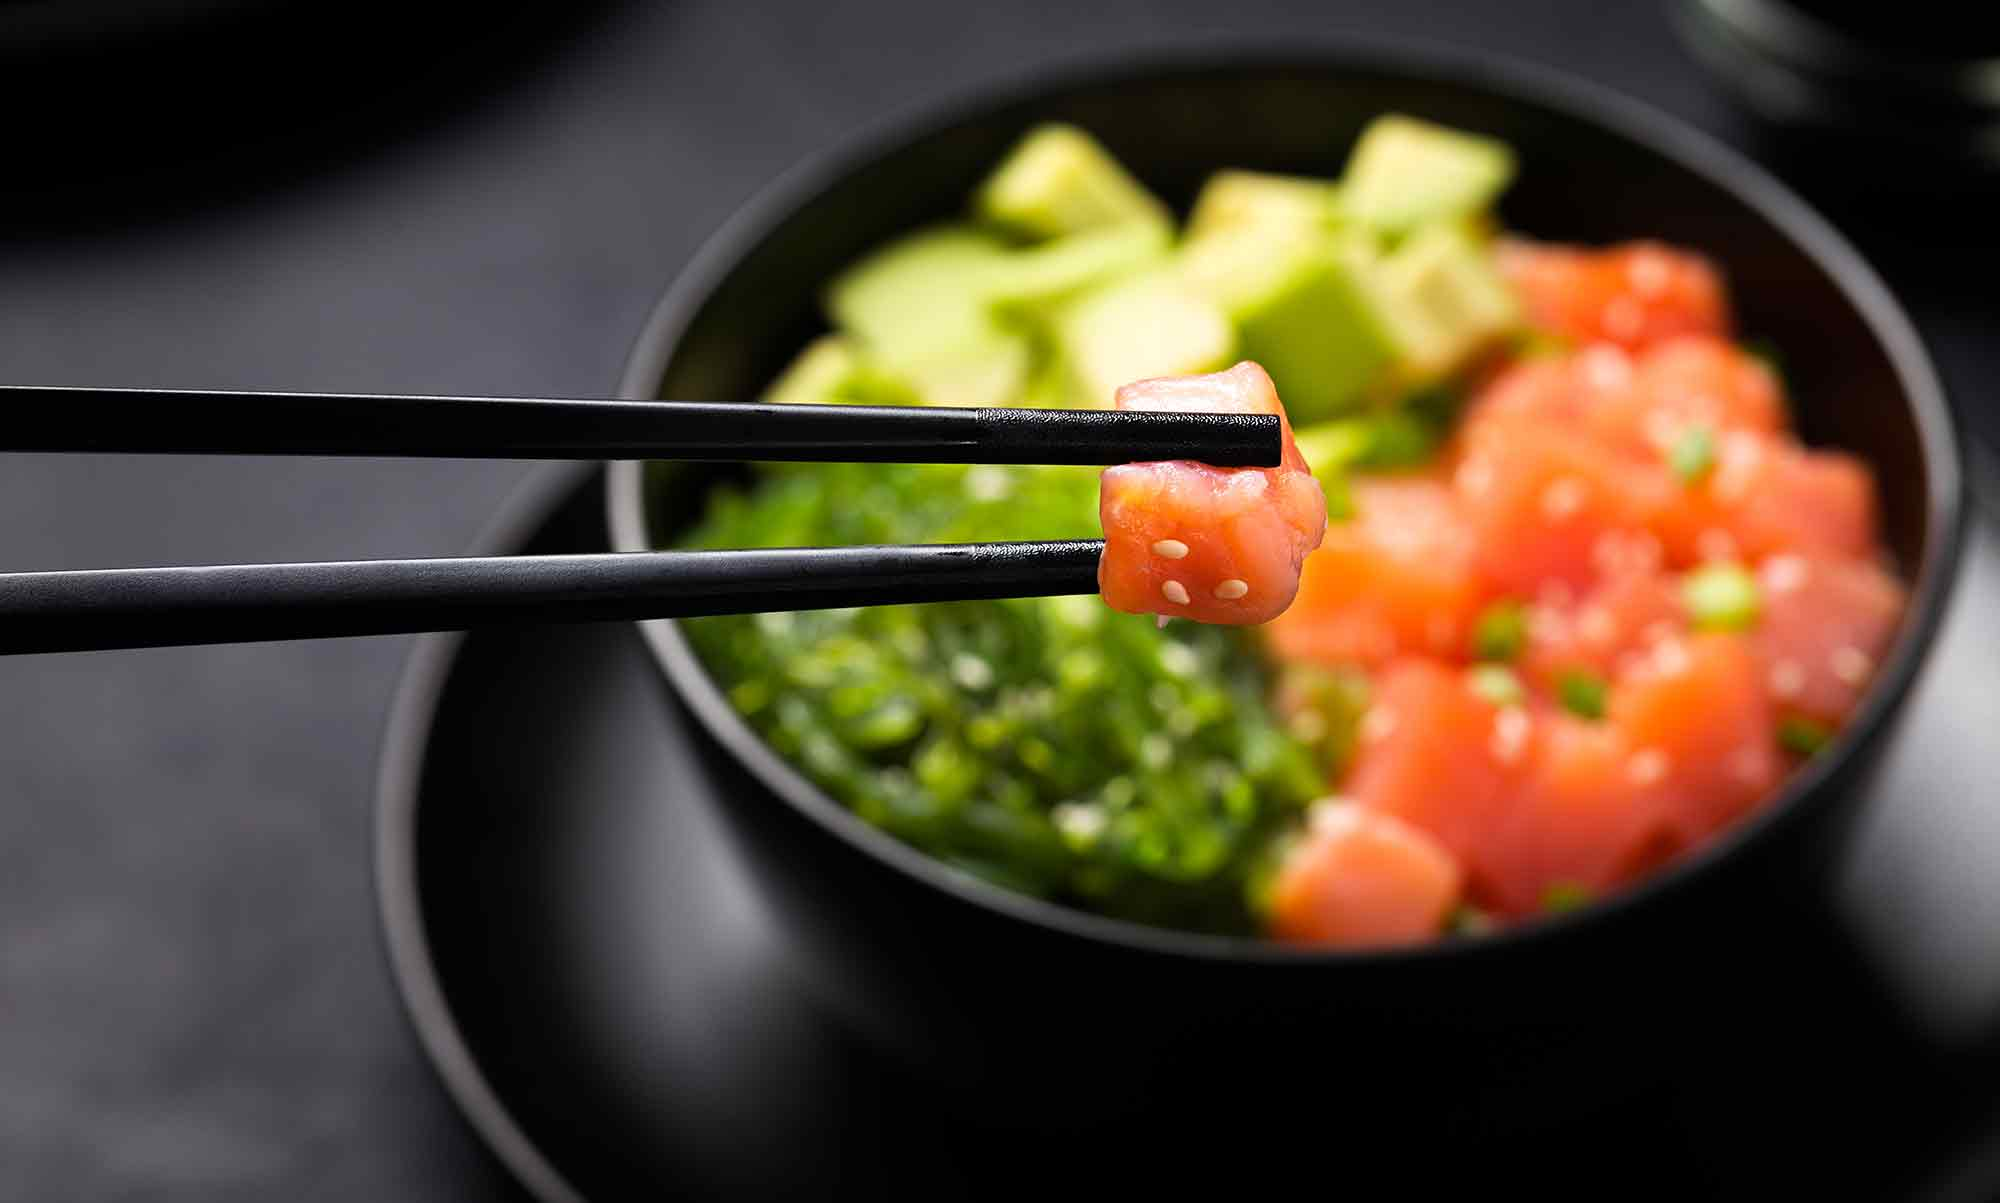 Poke with diced red fish avocado and green seaweeds salad with piece of salmon in chopsticks in foreground 2020 trends